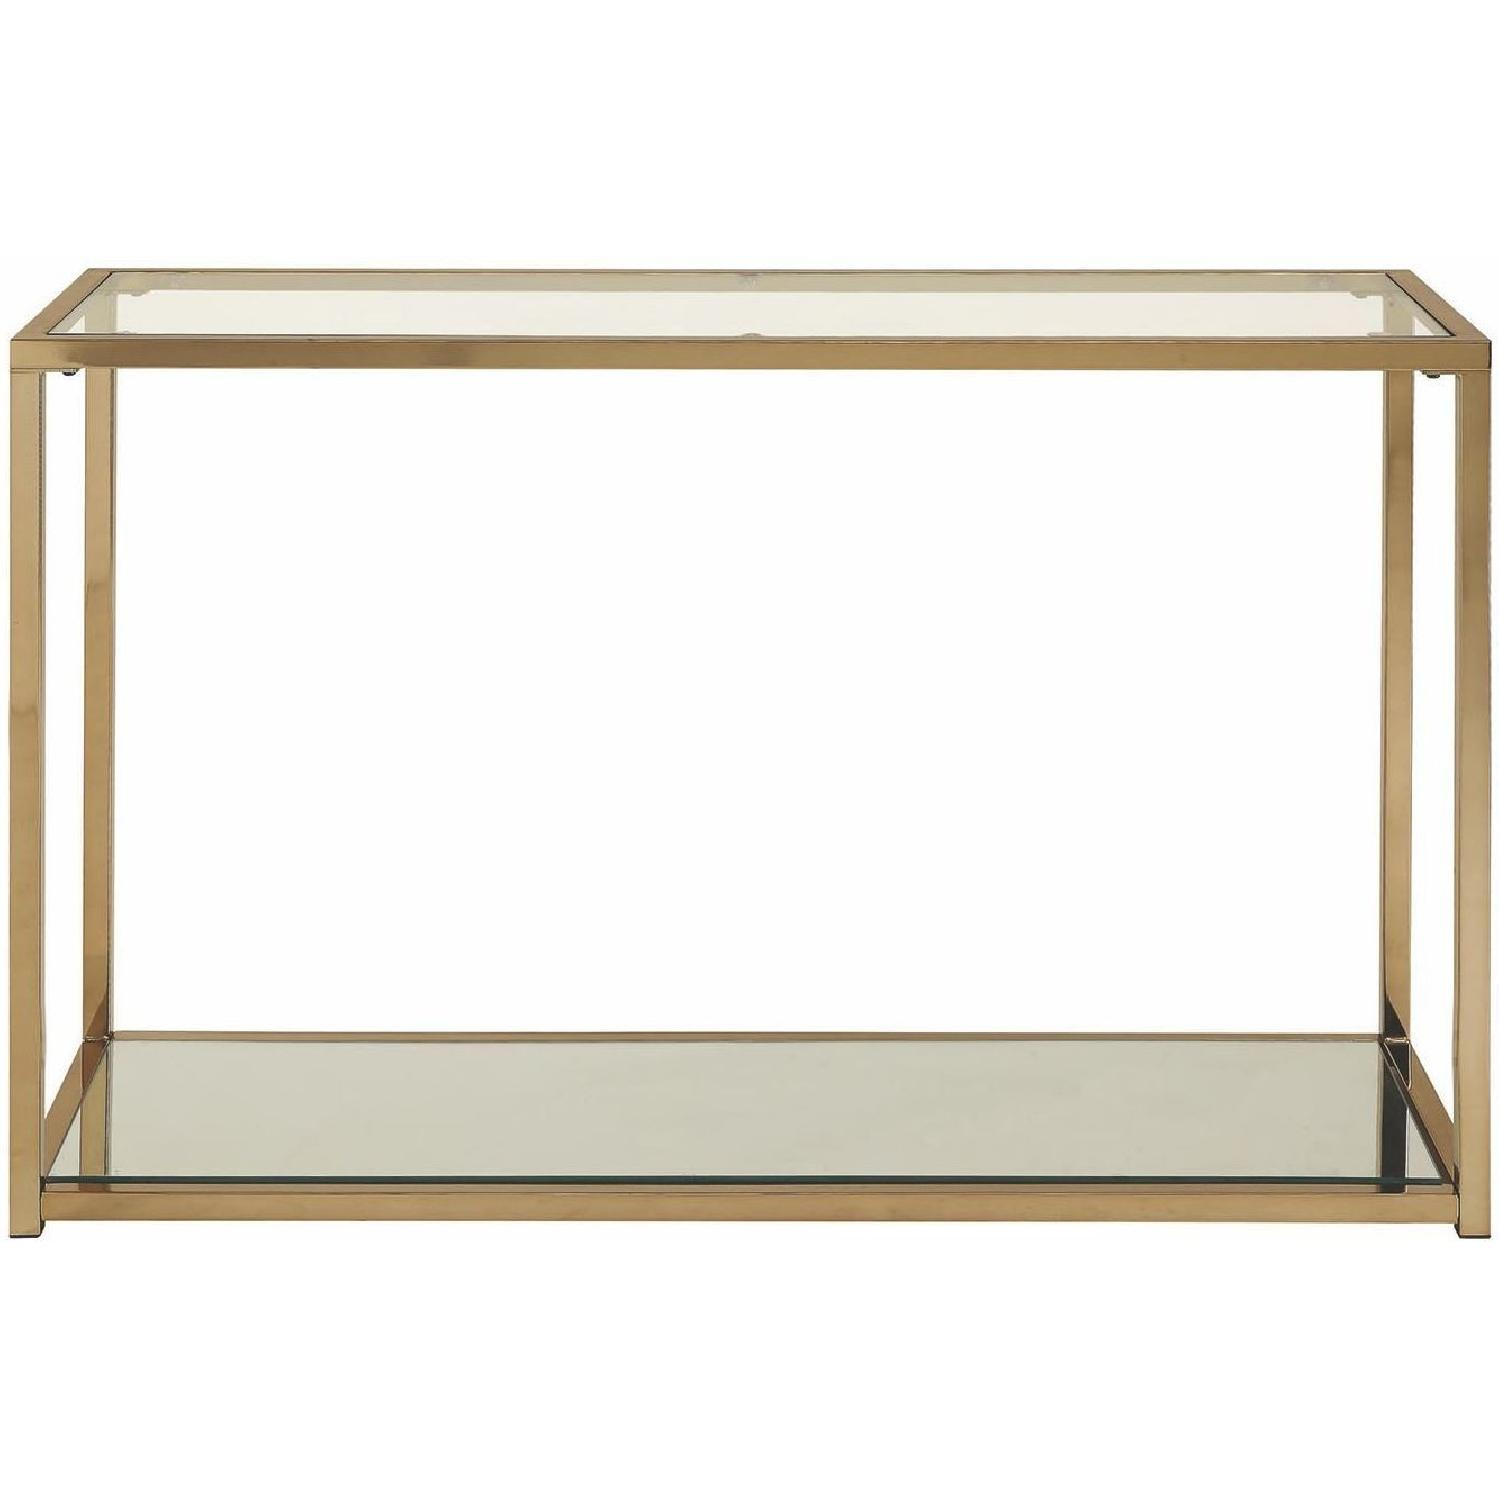 Modern Sofa Table w/ Chrome Frame,Glass Top & Mirror Shelf-0